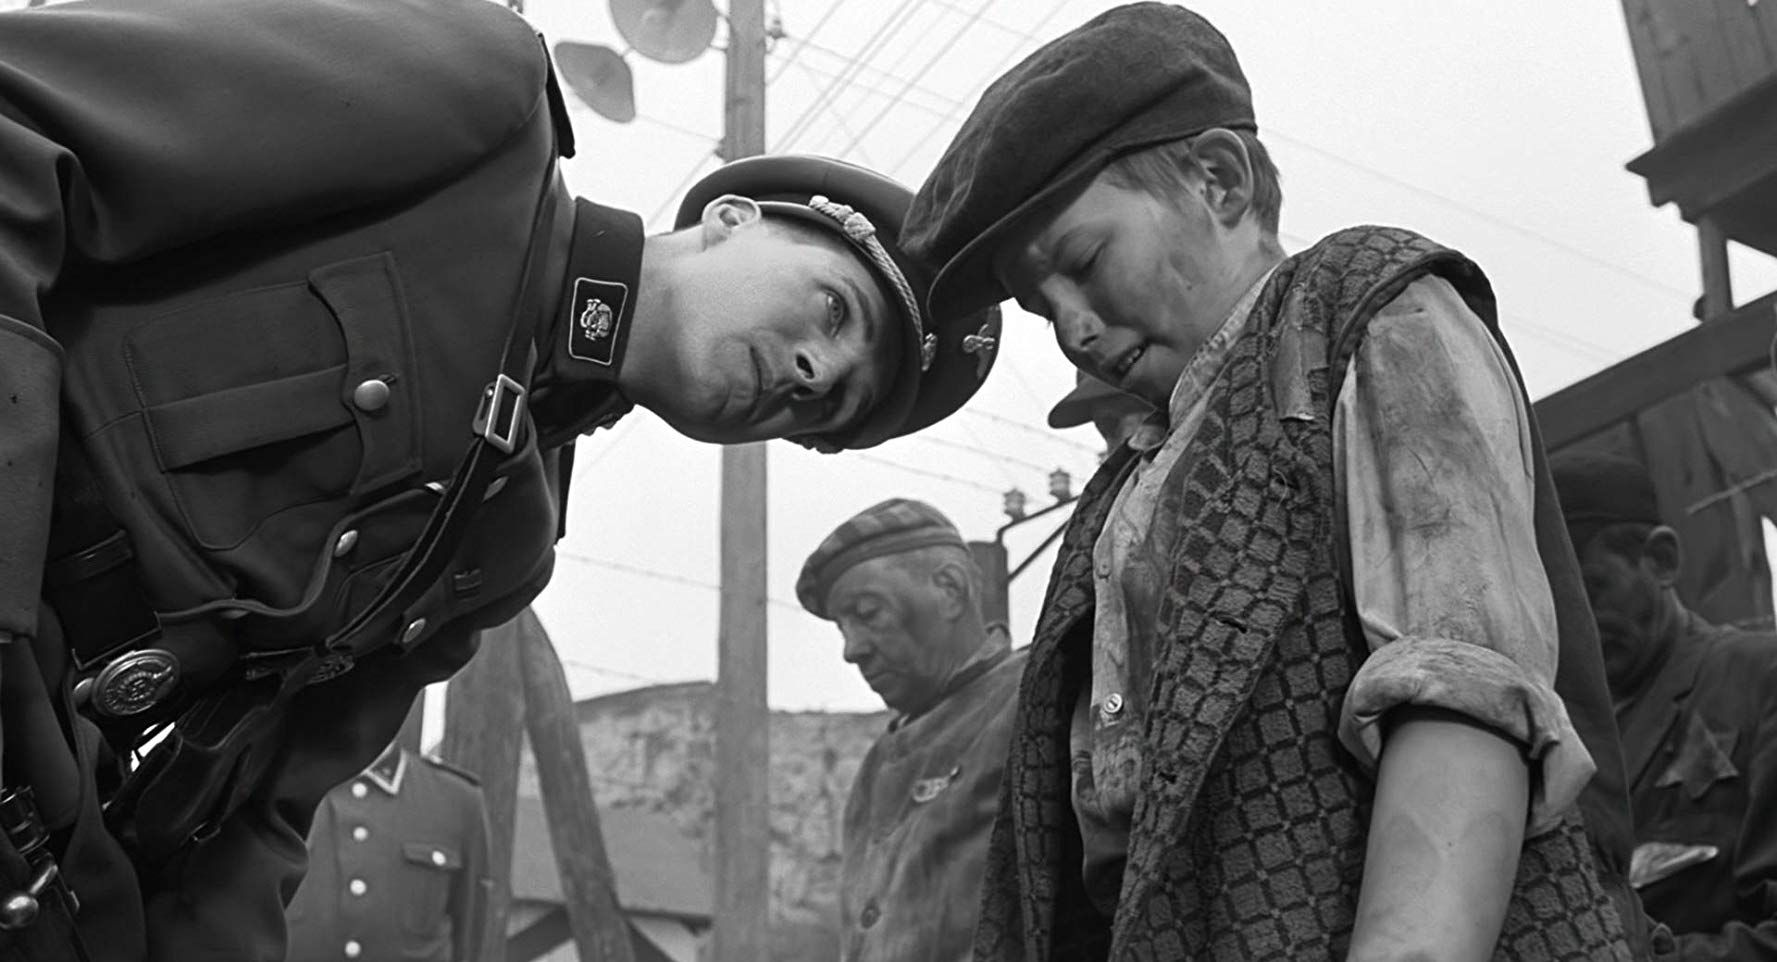 A still from the film schindlers list schindlers list